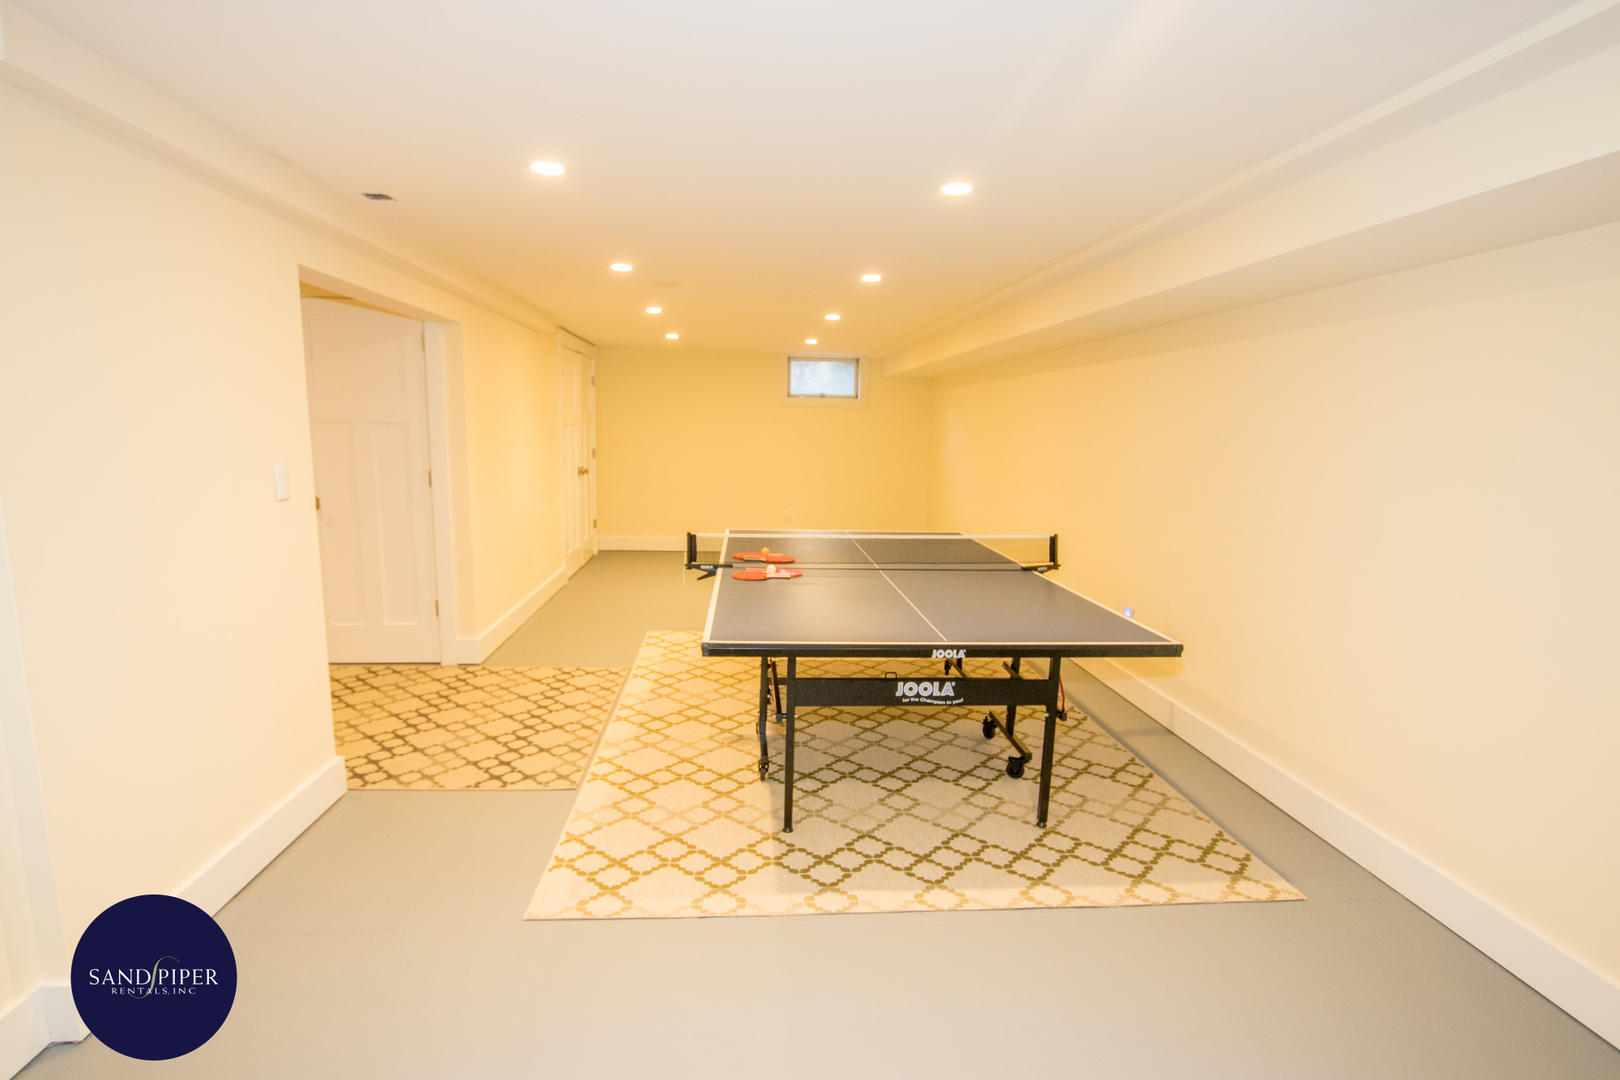 Ping pong table on lower level